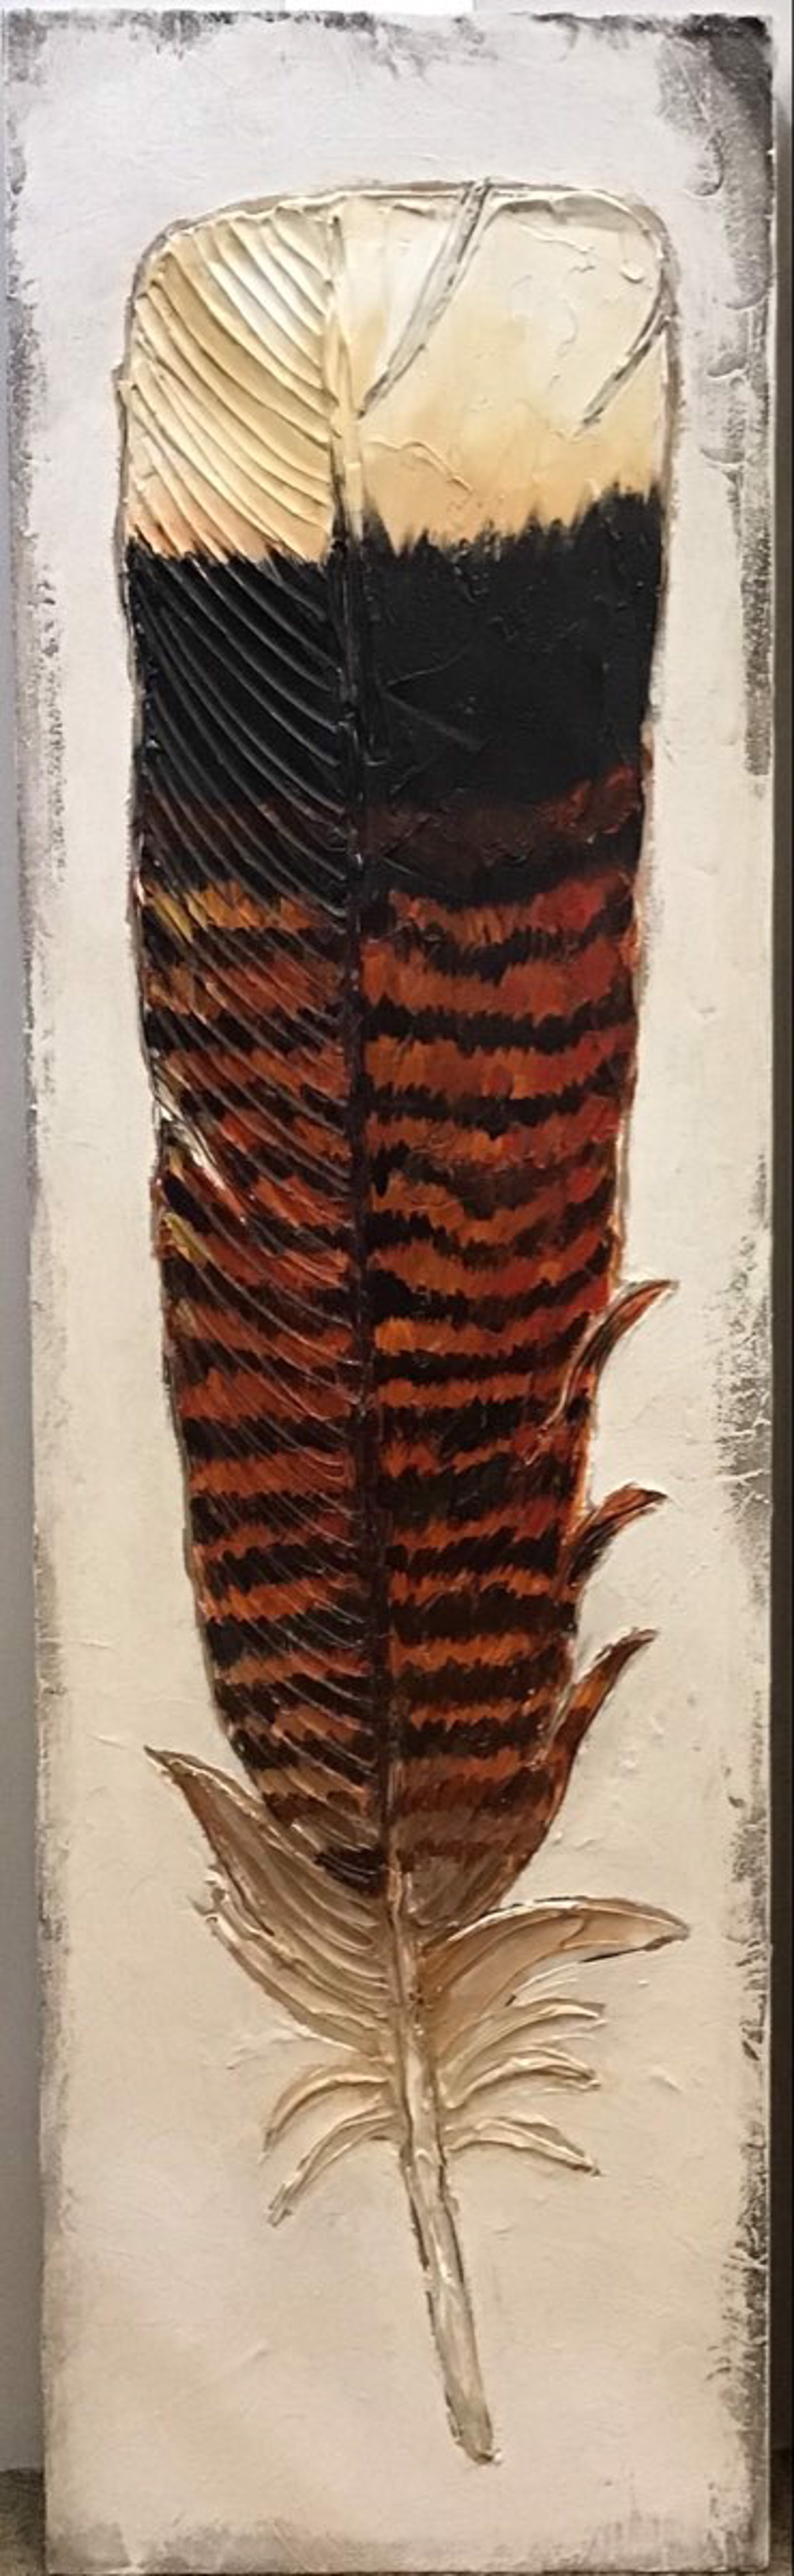 Turkey Feather by Sherry Cook